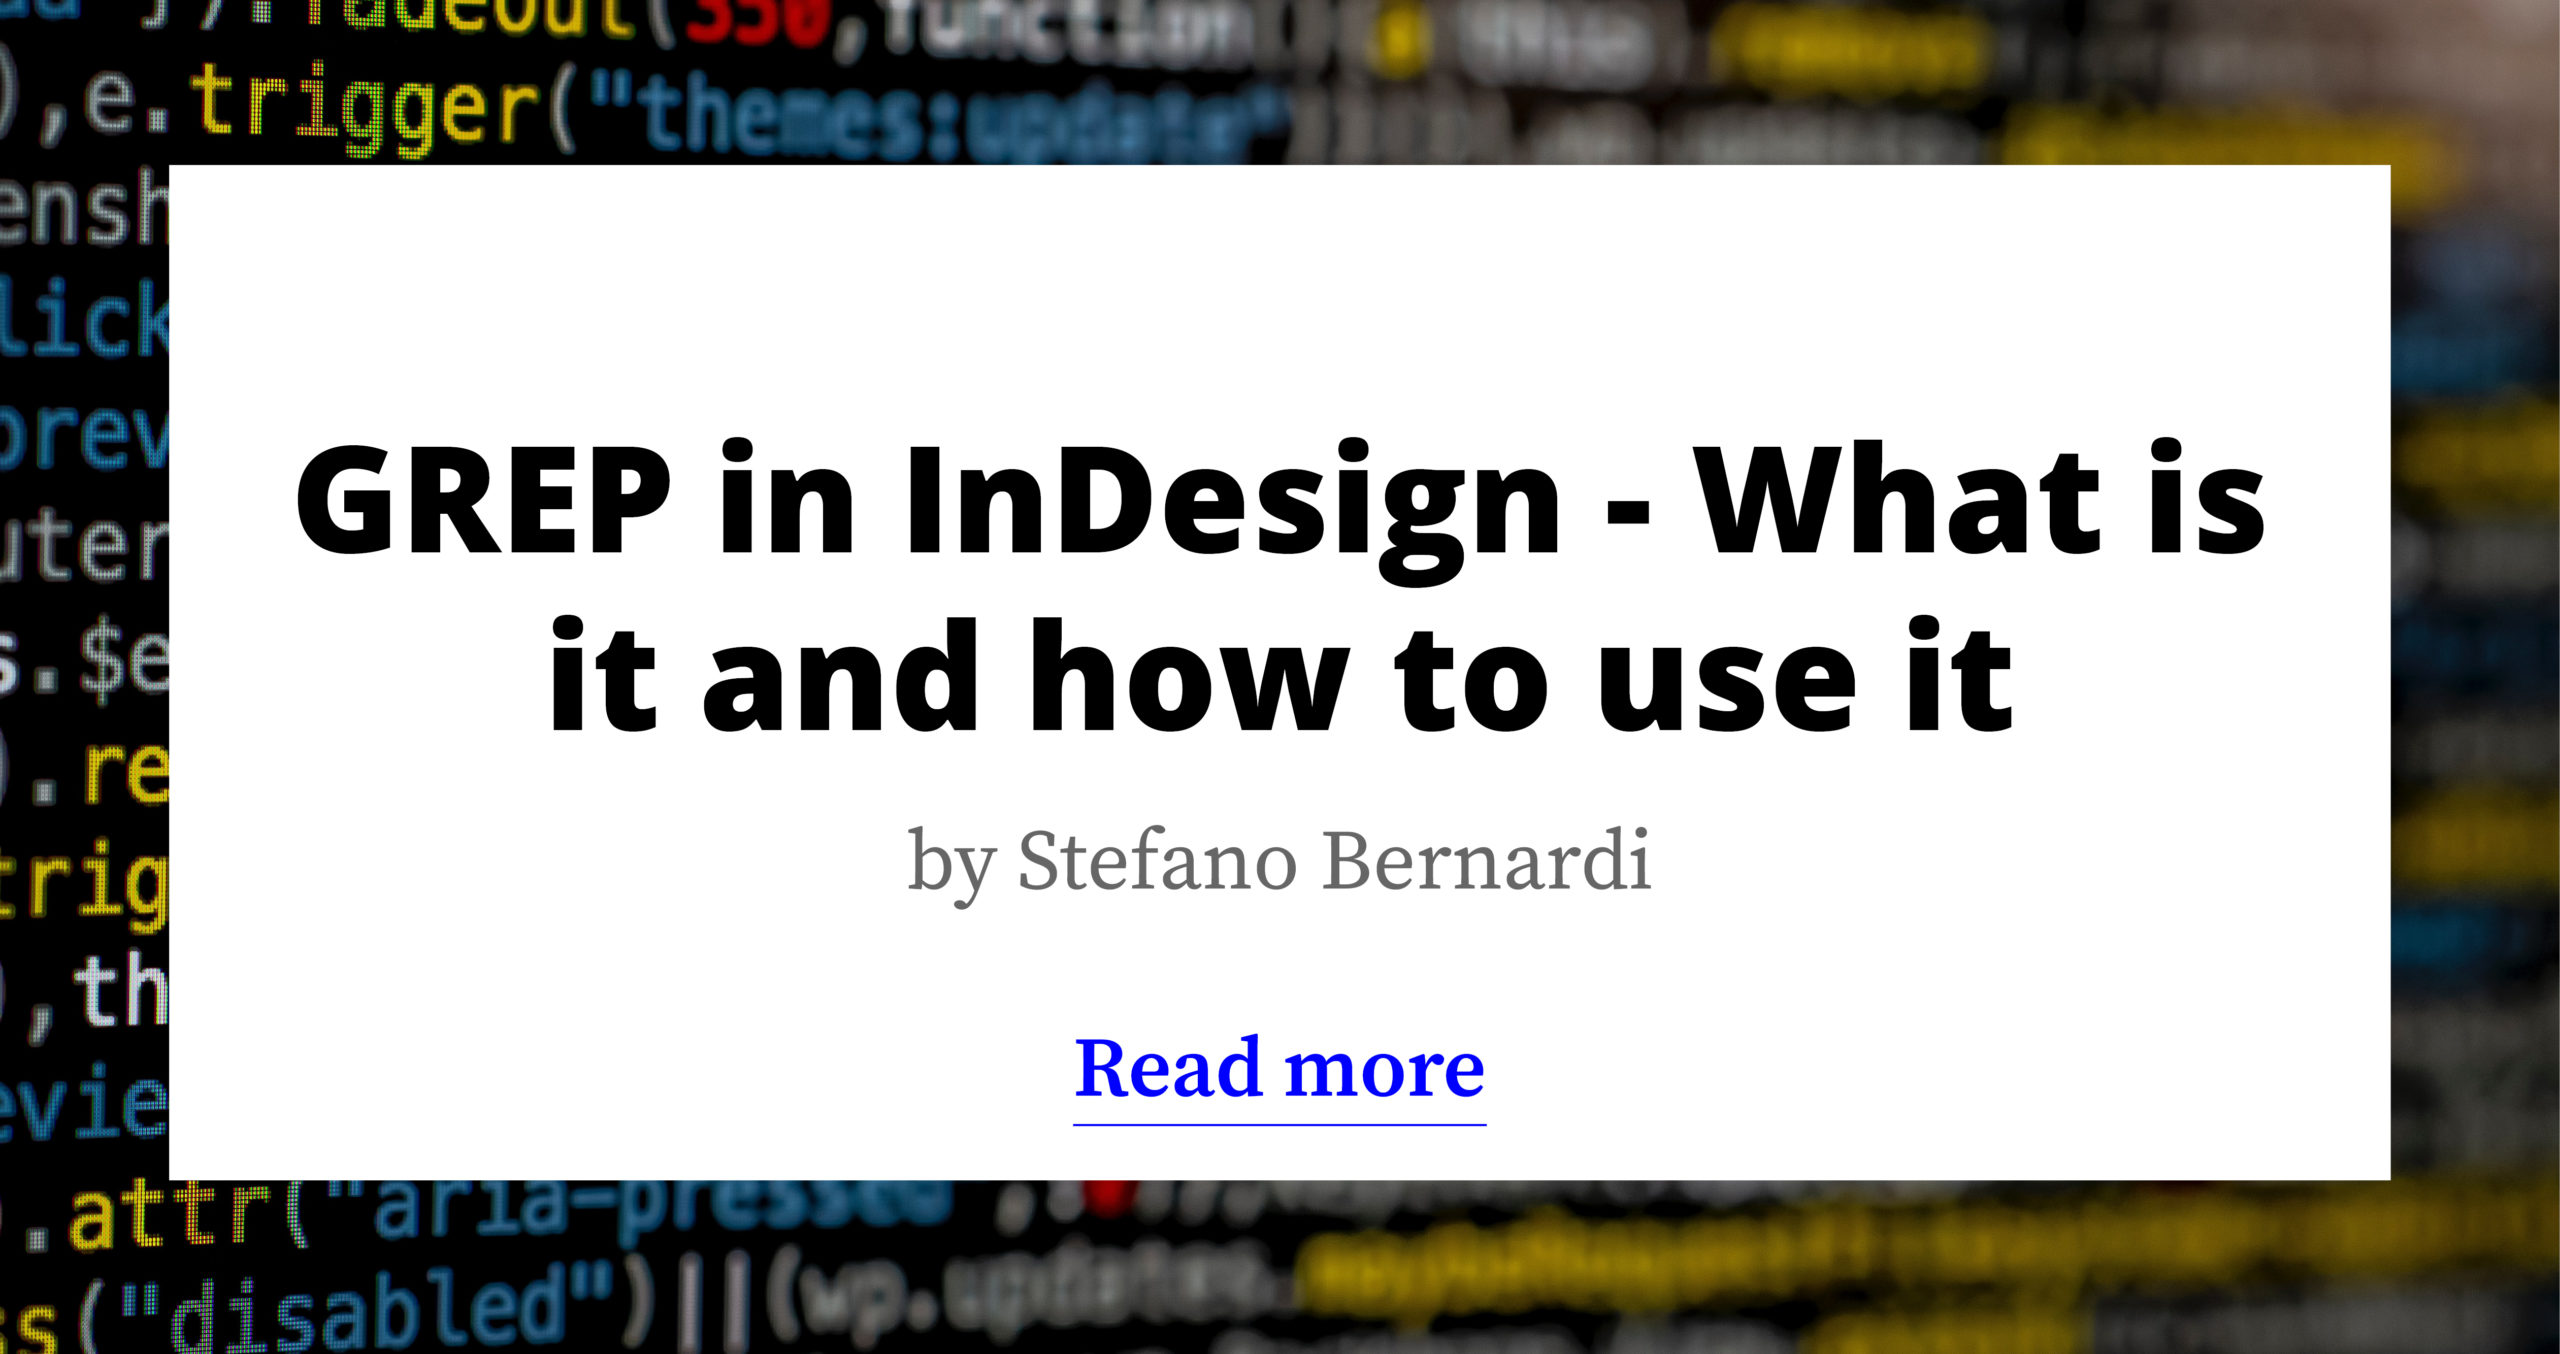 GREP in InDesign - What is it and how to use it